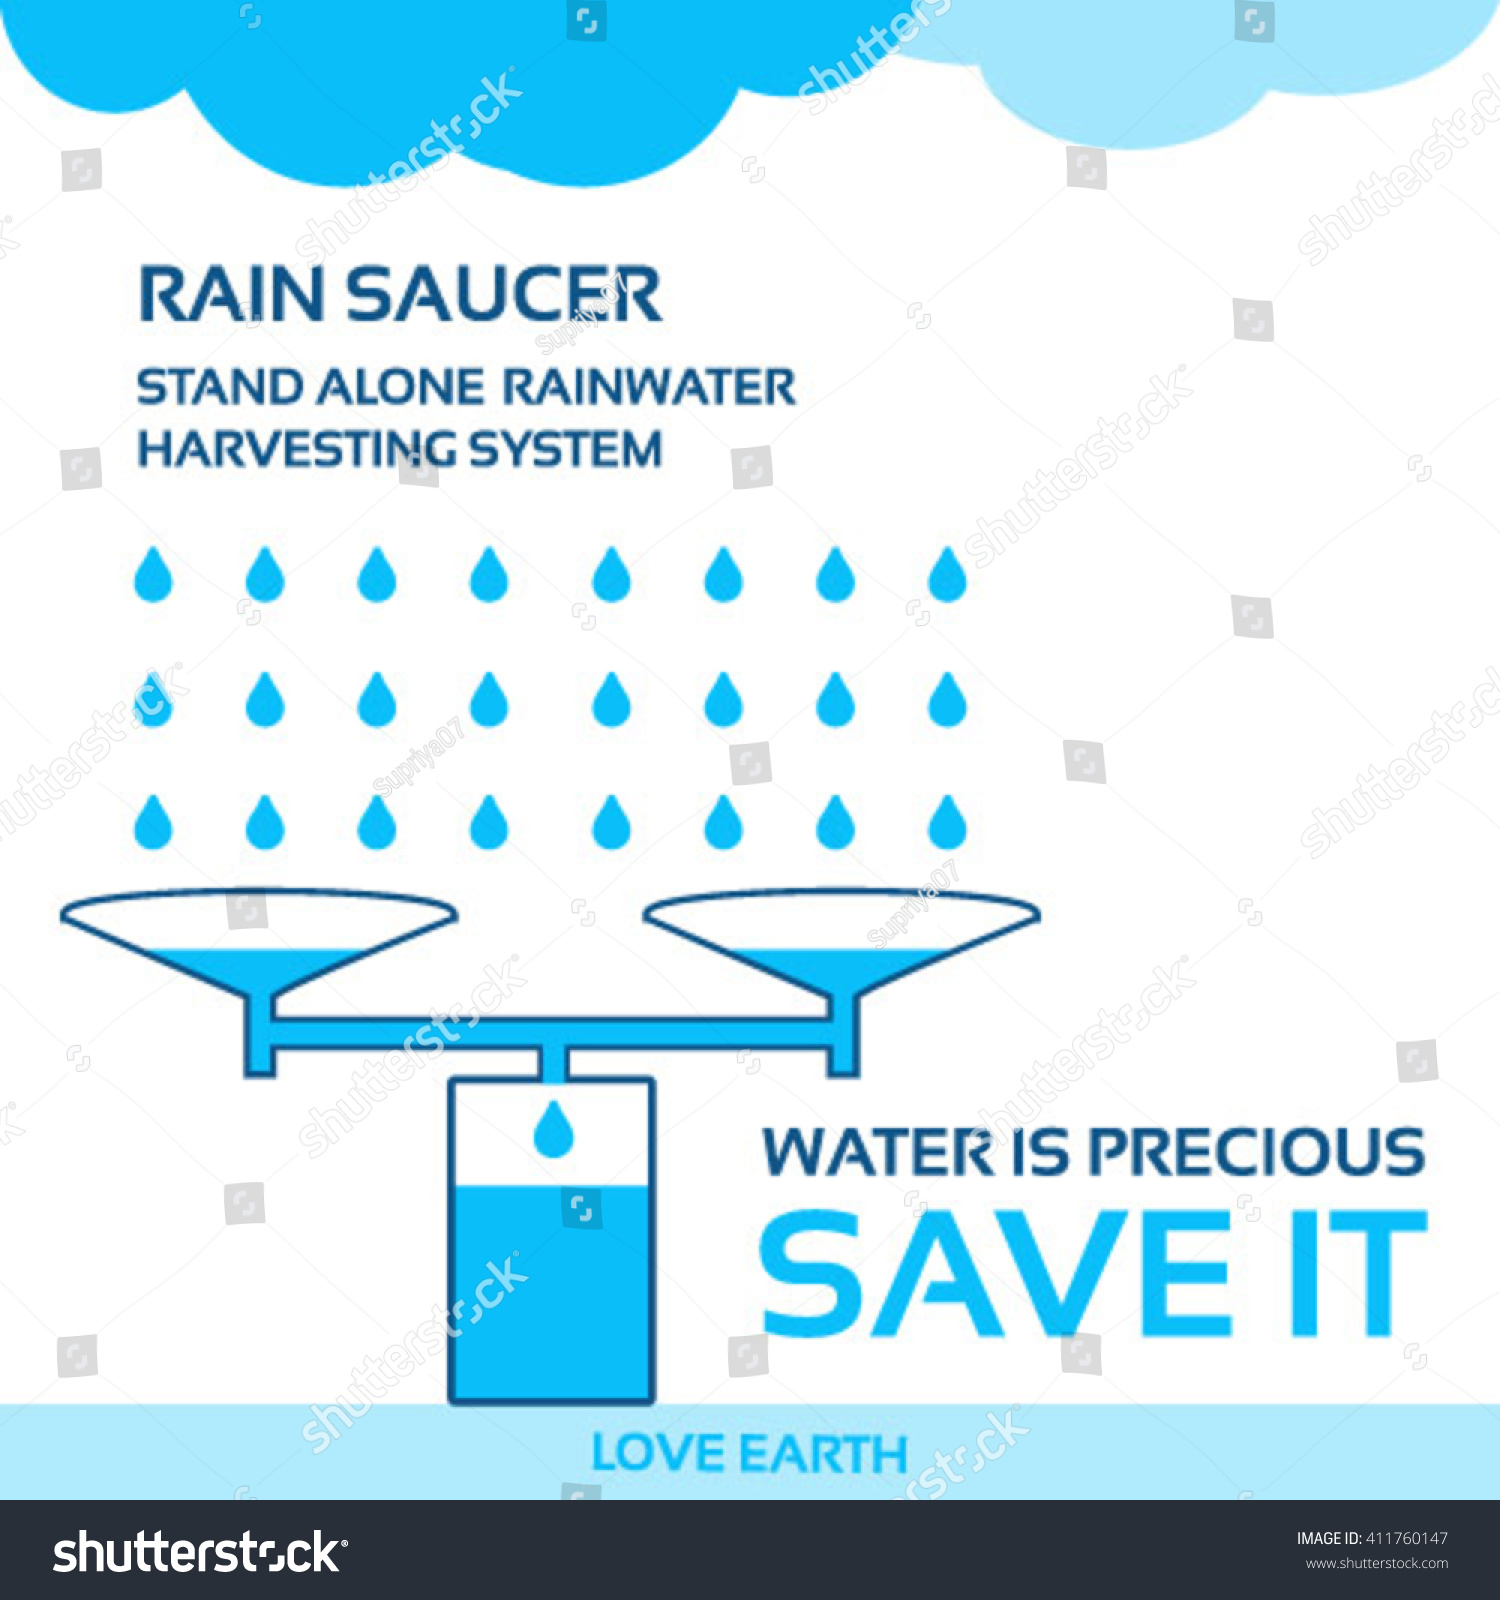 Water life save it rainwater harvesting solution water crisisvector water is life save it rainwater harvesting solution to water crisis vector altavistaventures Gallery